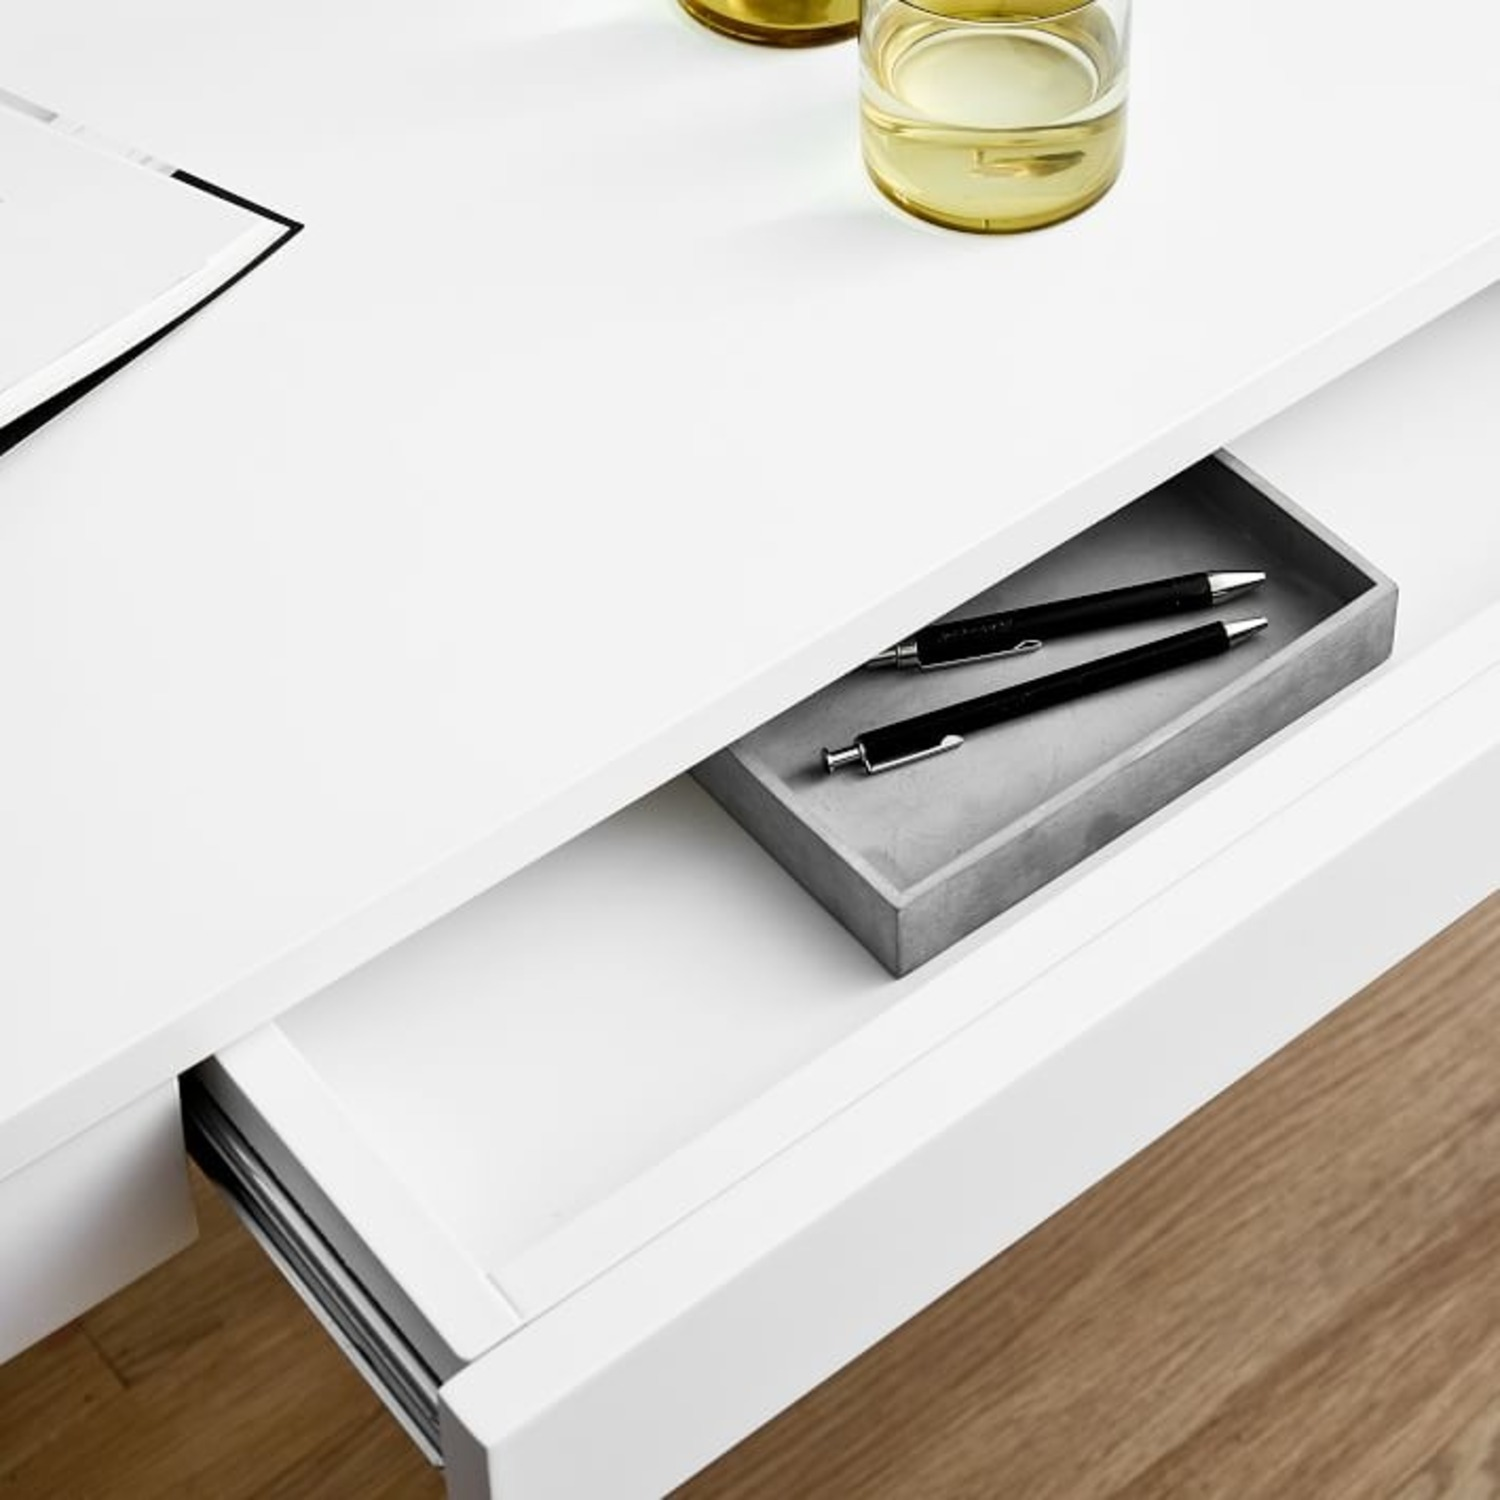 West Elm Parsons Desk With Drawers, White - image-2